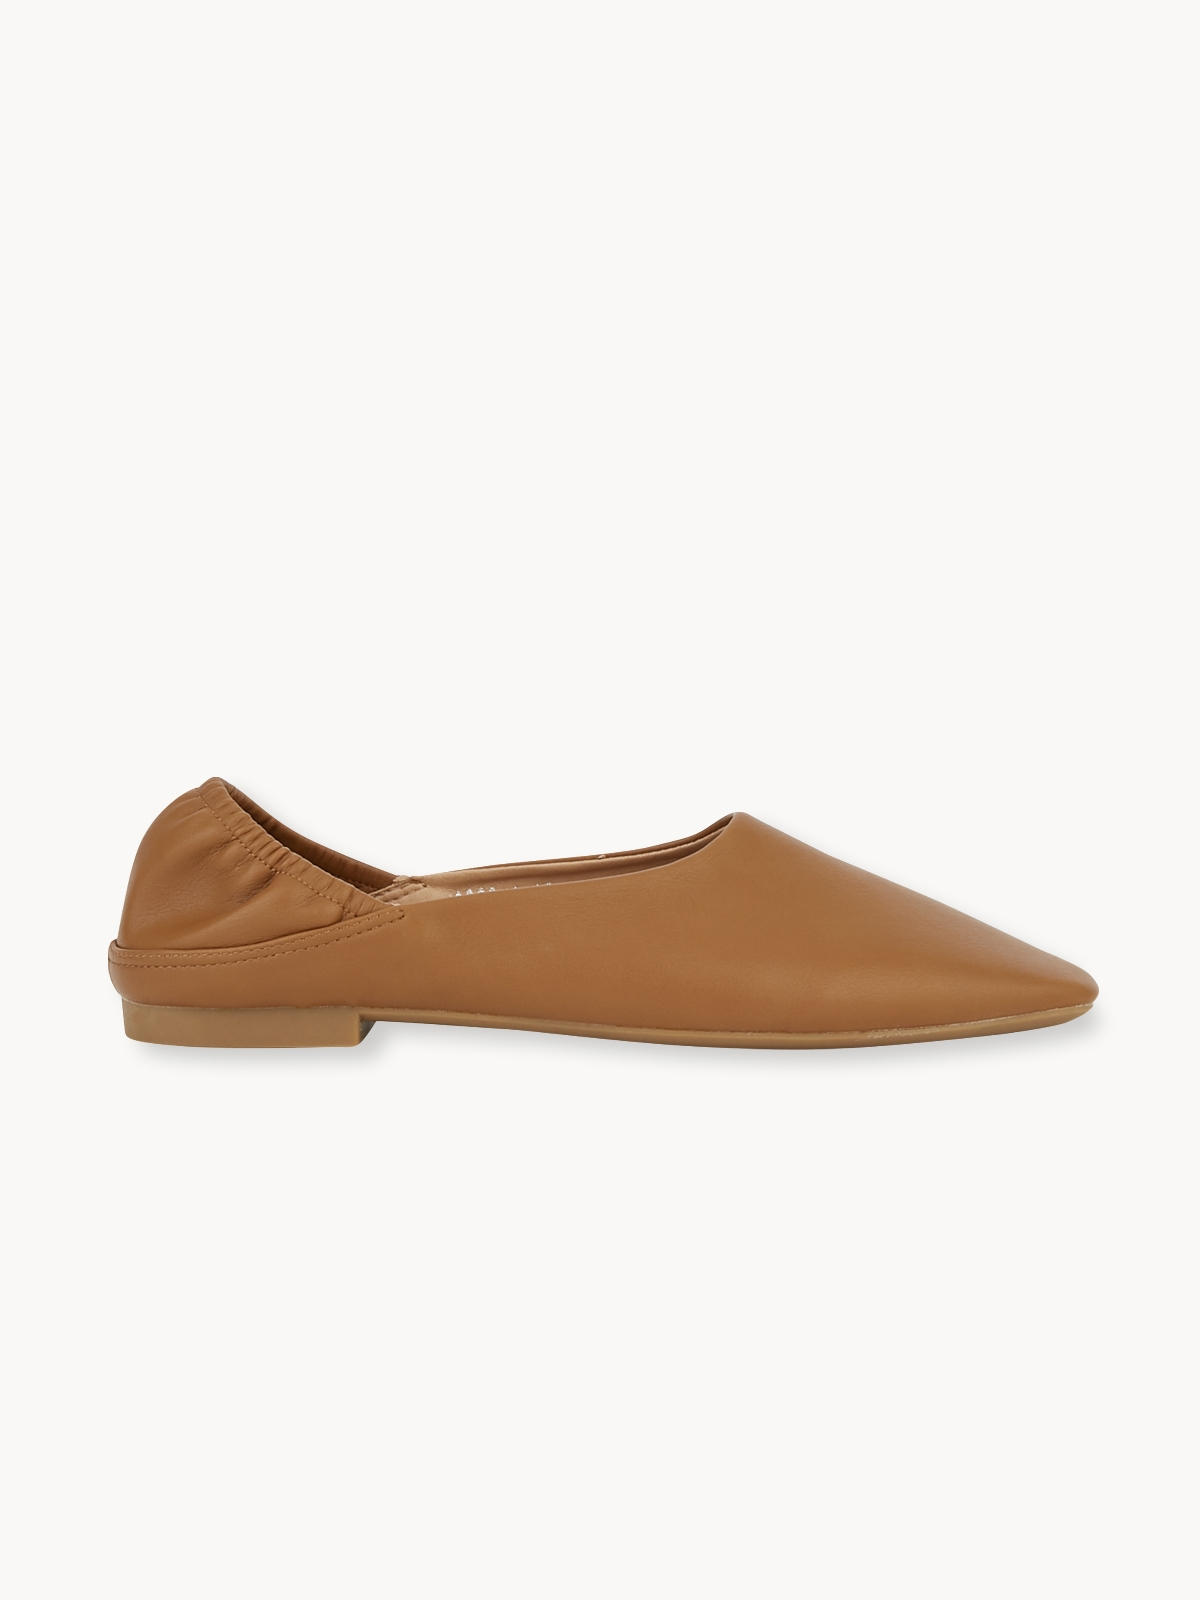 Sugar Monday Loafers Brown